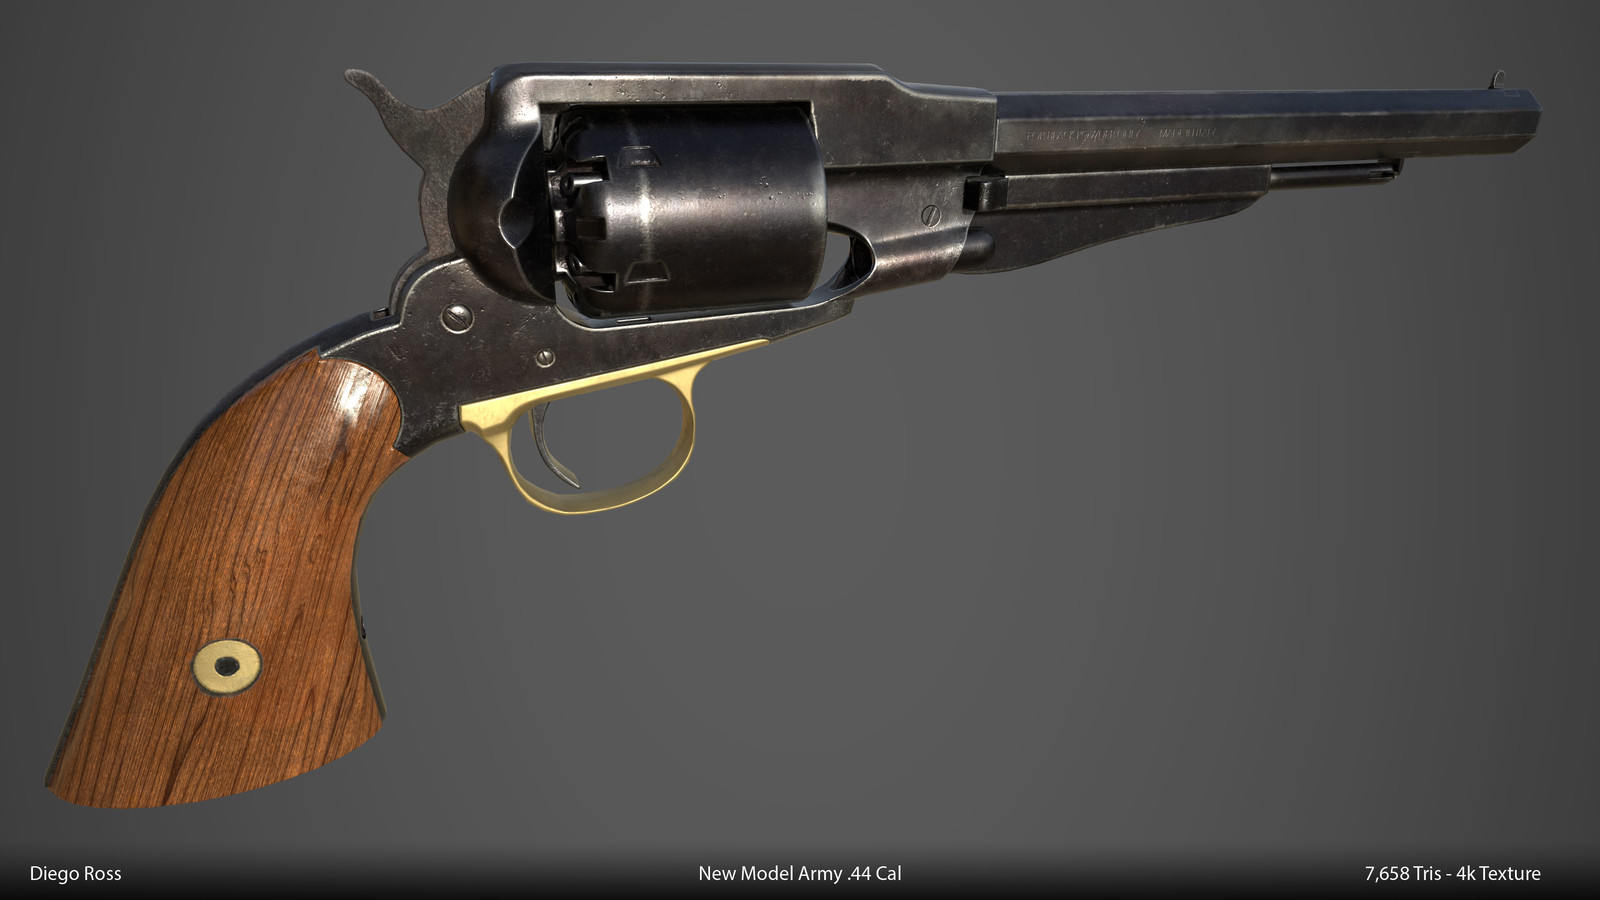 New Model Army .44 Cal